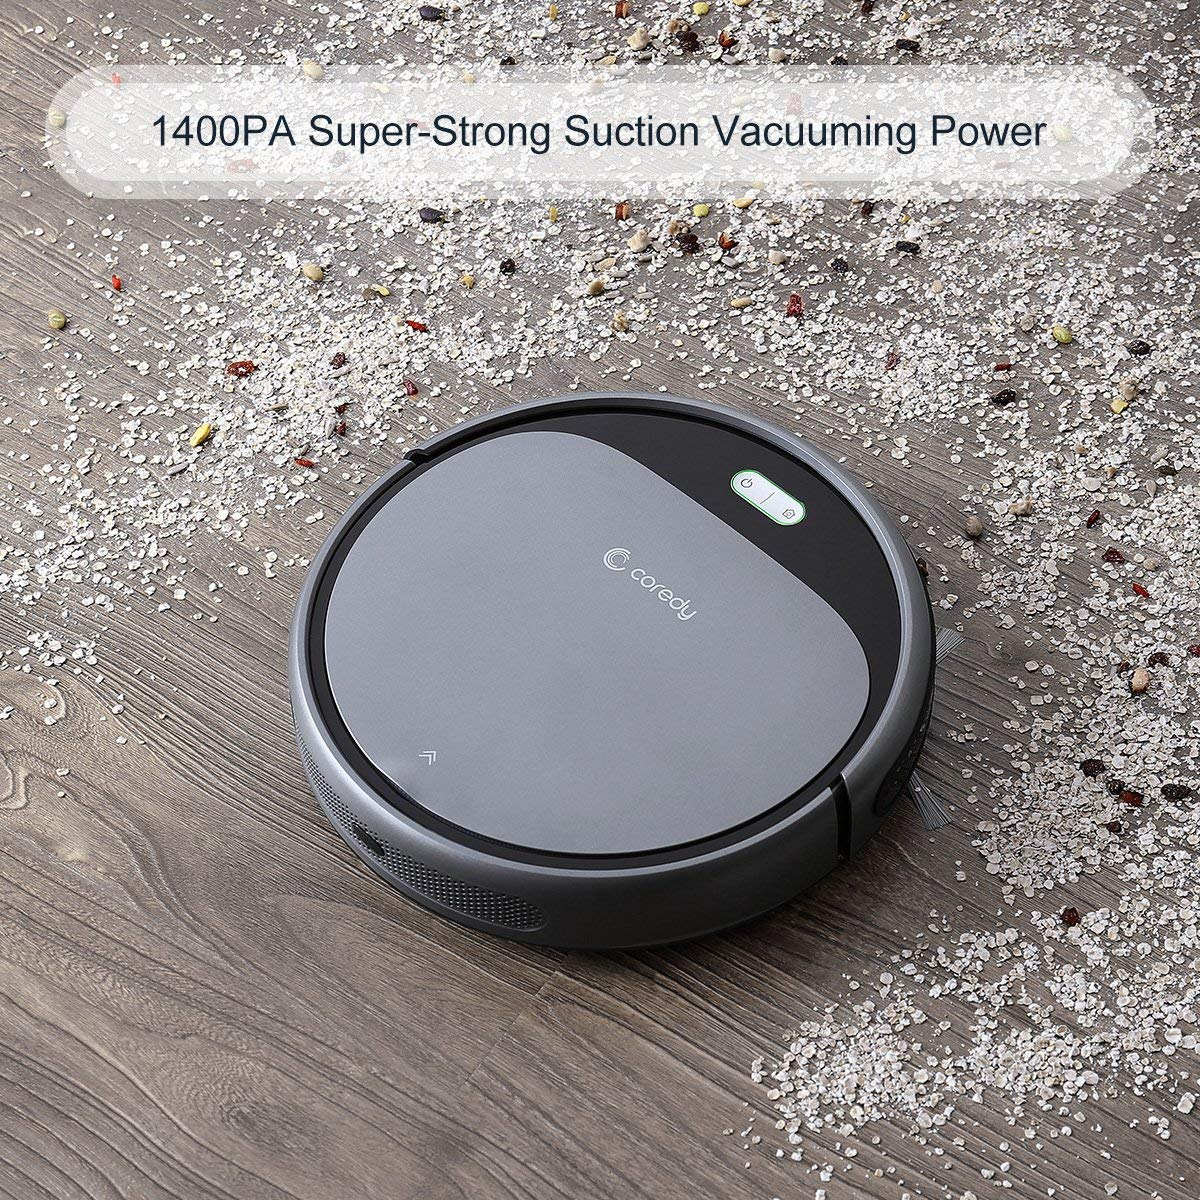 Best Vacuum for High Pile Carpet